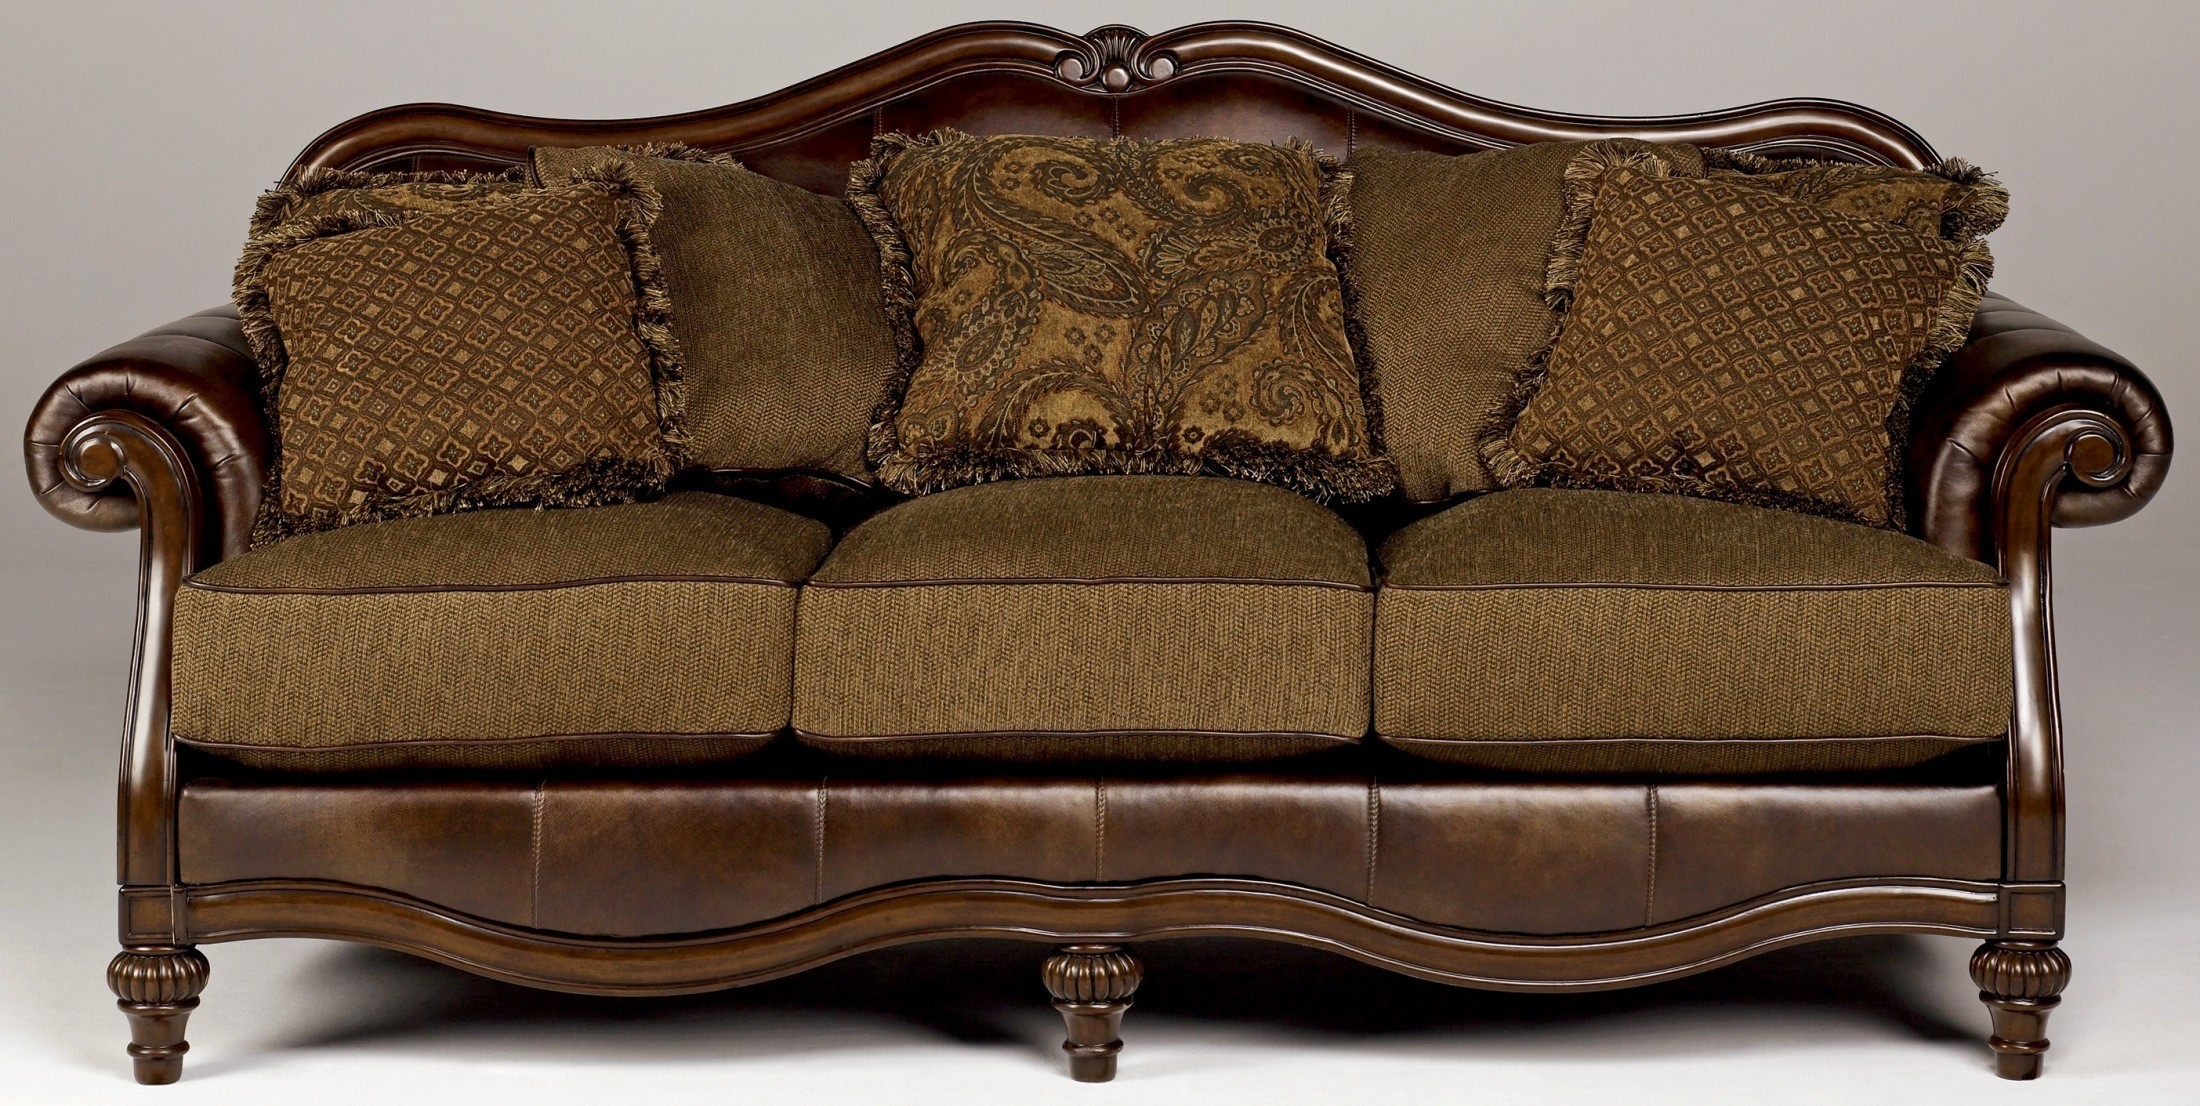 Antike Sofas & Loveseats Claremore Antique Sofa From Ashley 8430338 Coleman